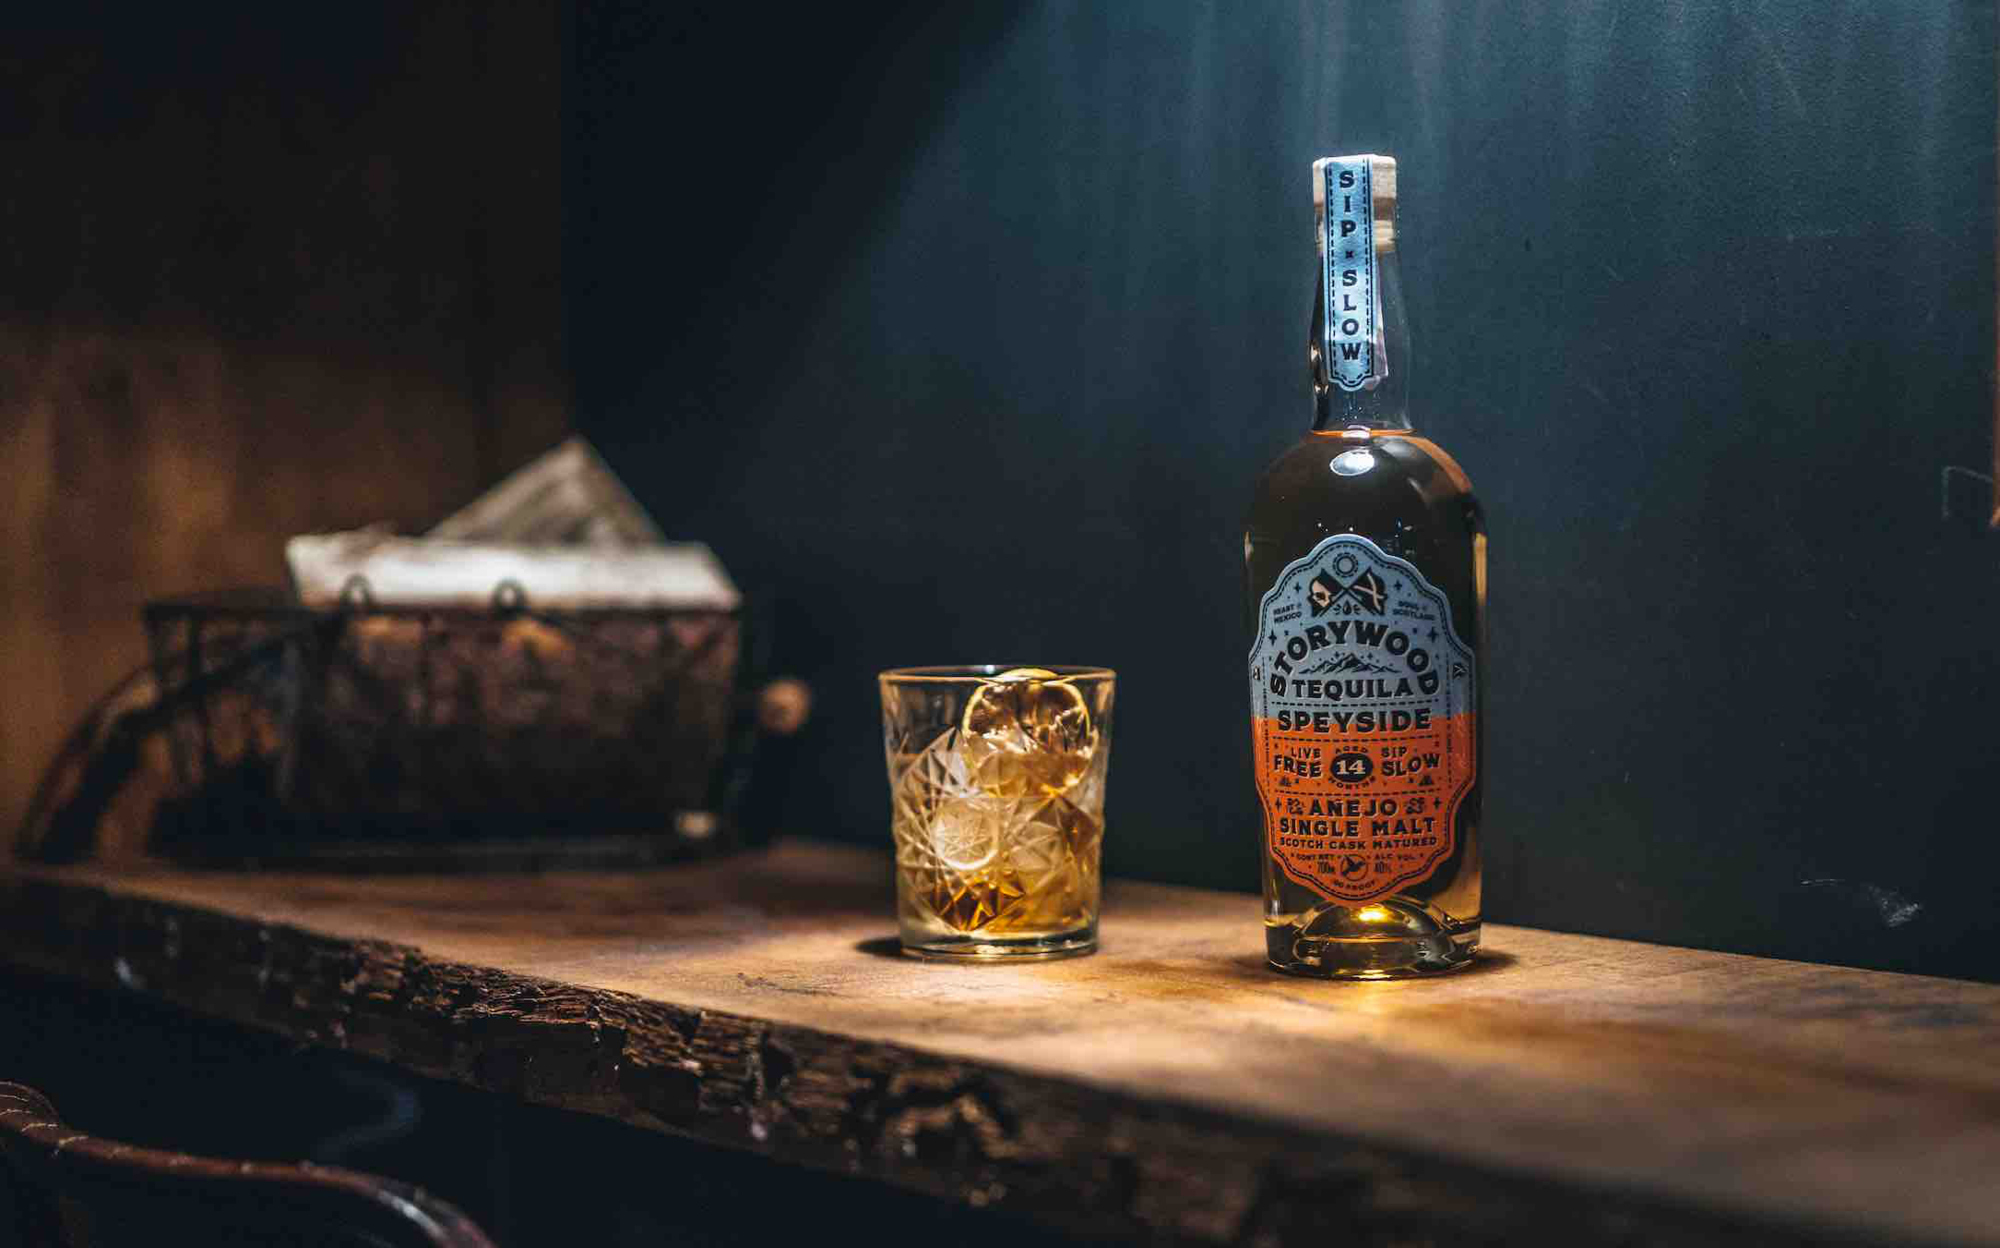 Storywood Speyside 14 Anejo Tequila is matured for 14 months or more in Speyside whisky barrels